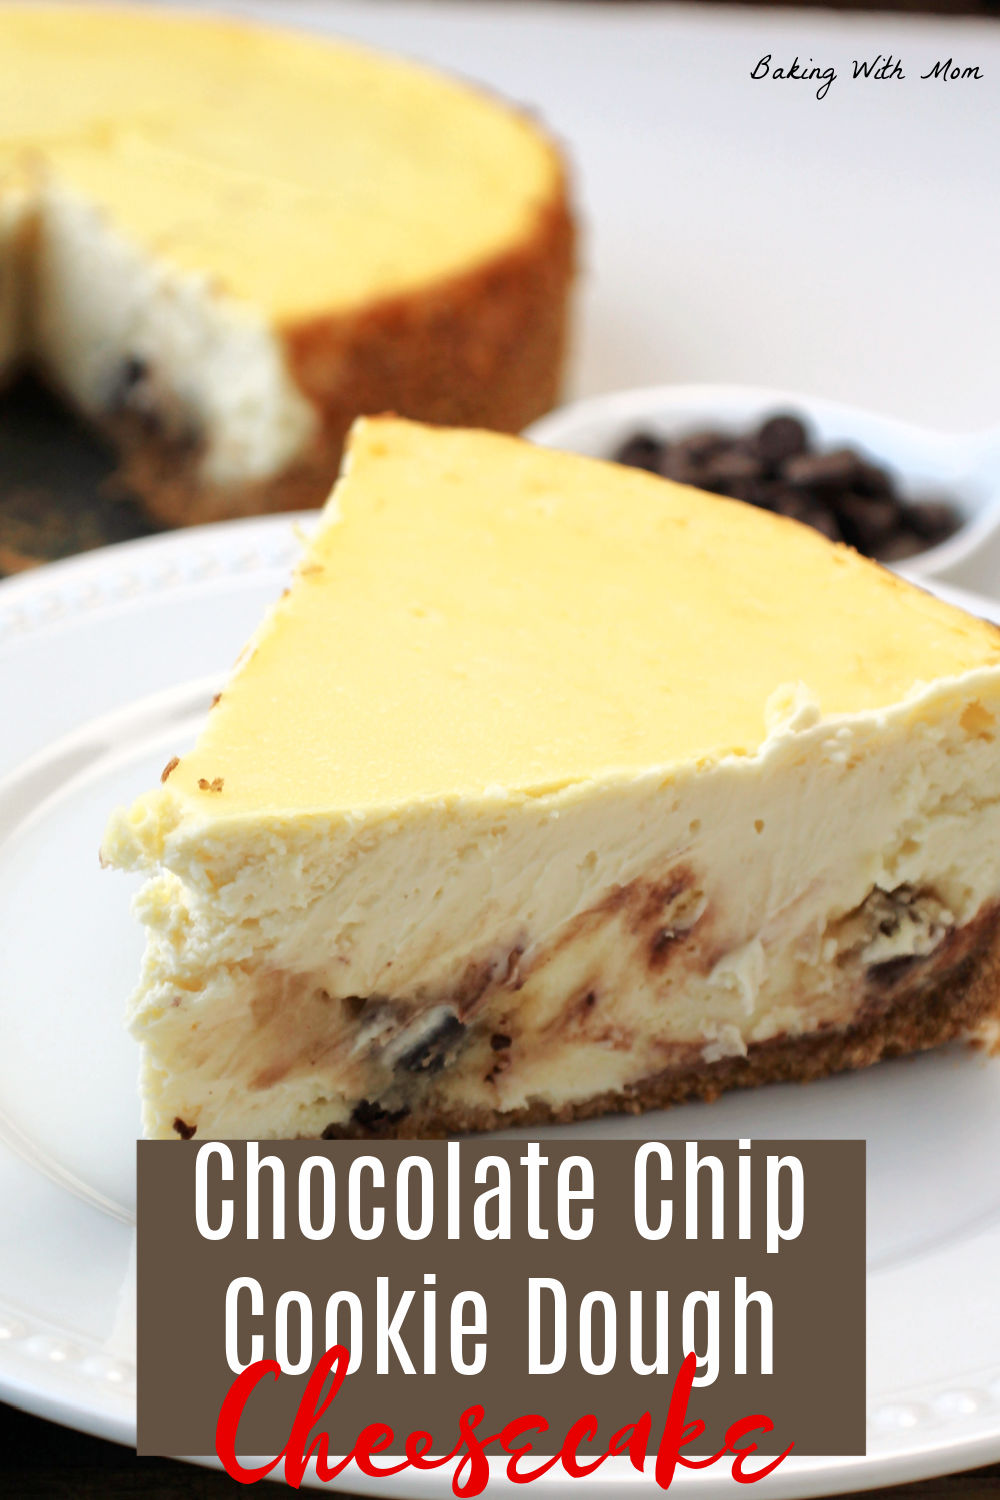 Slice of cheesecake with cookie dough inside